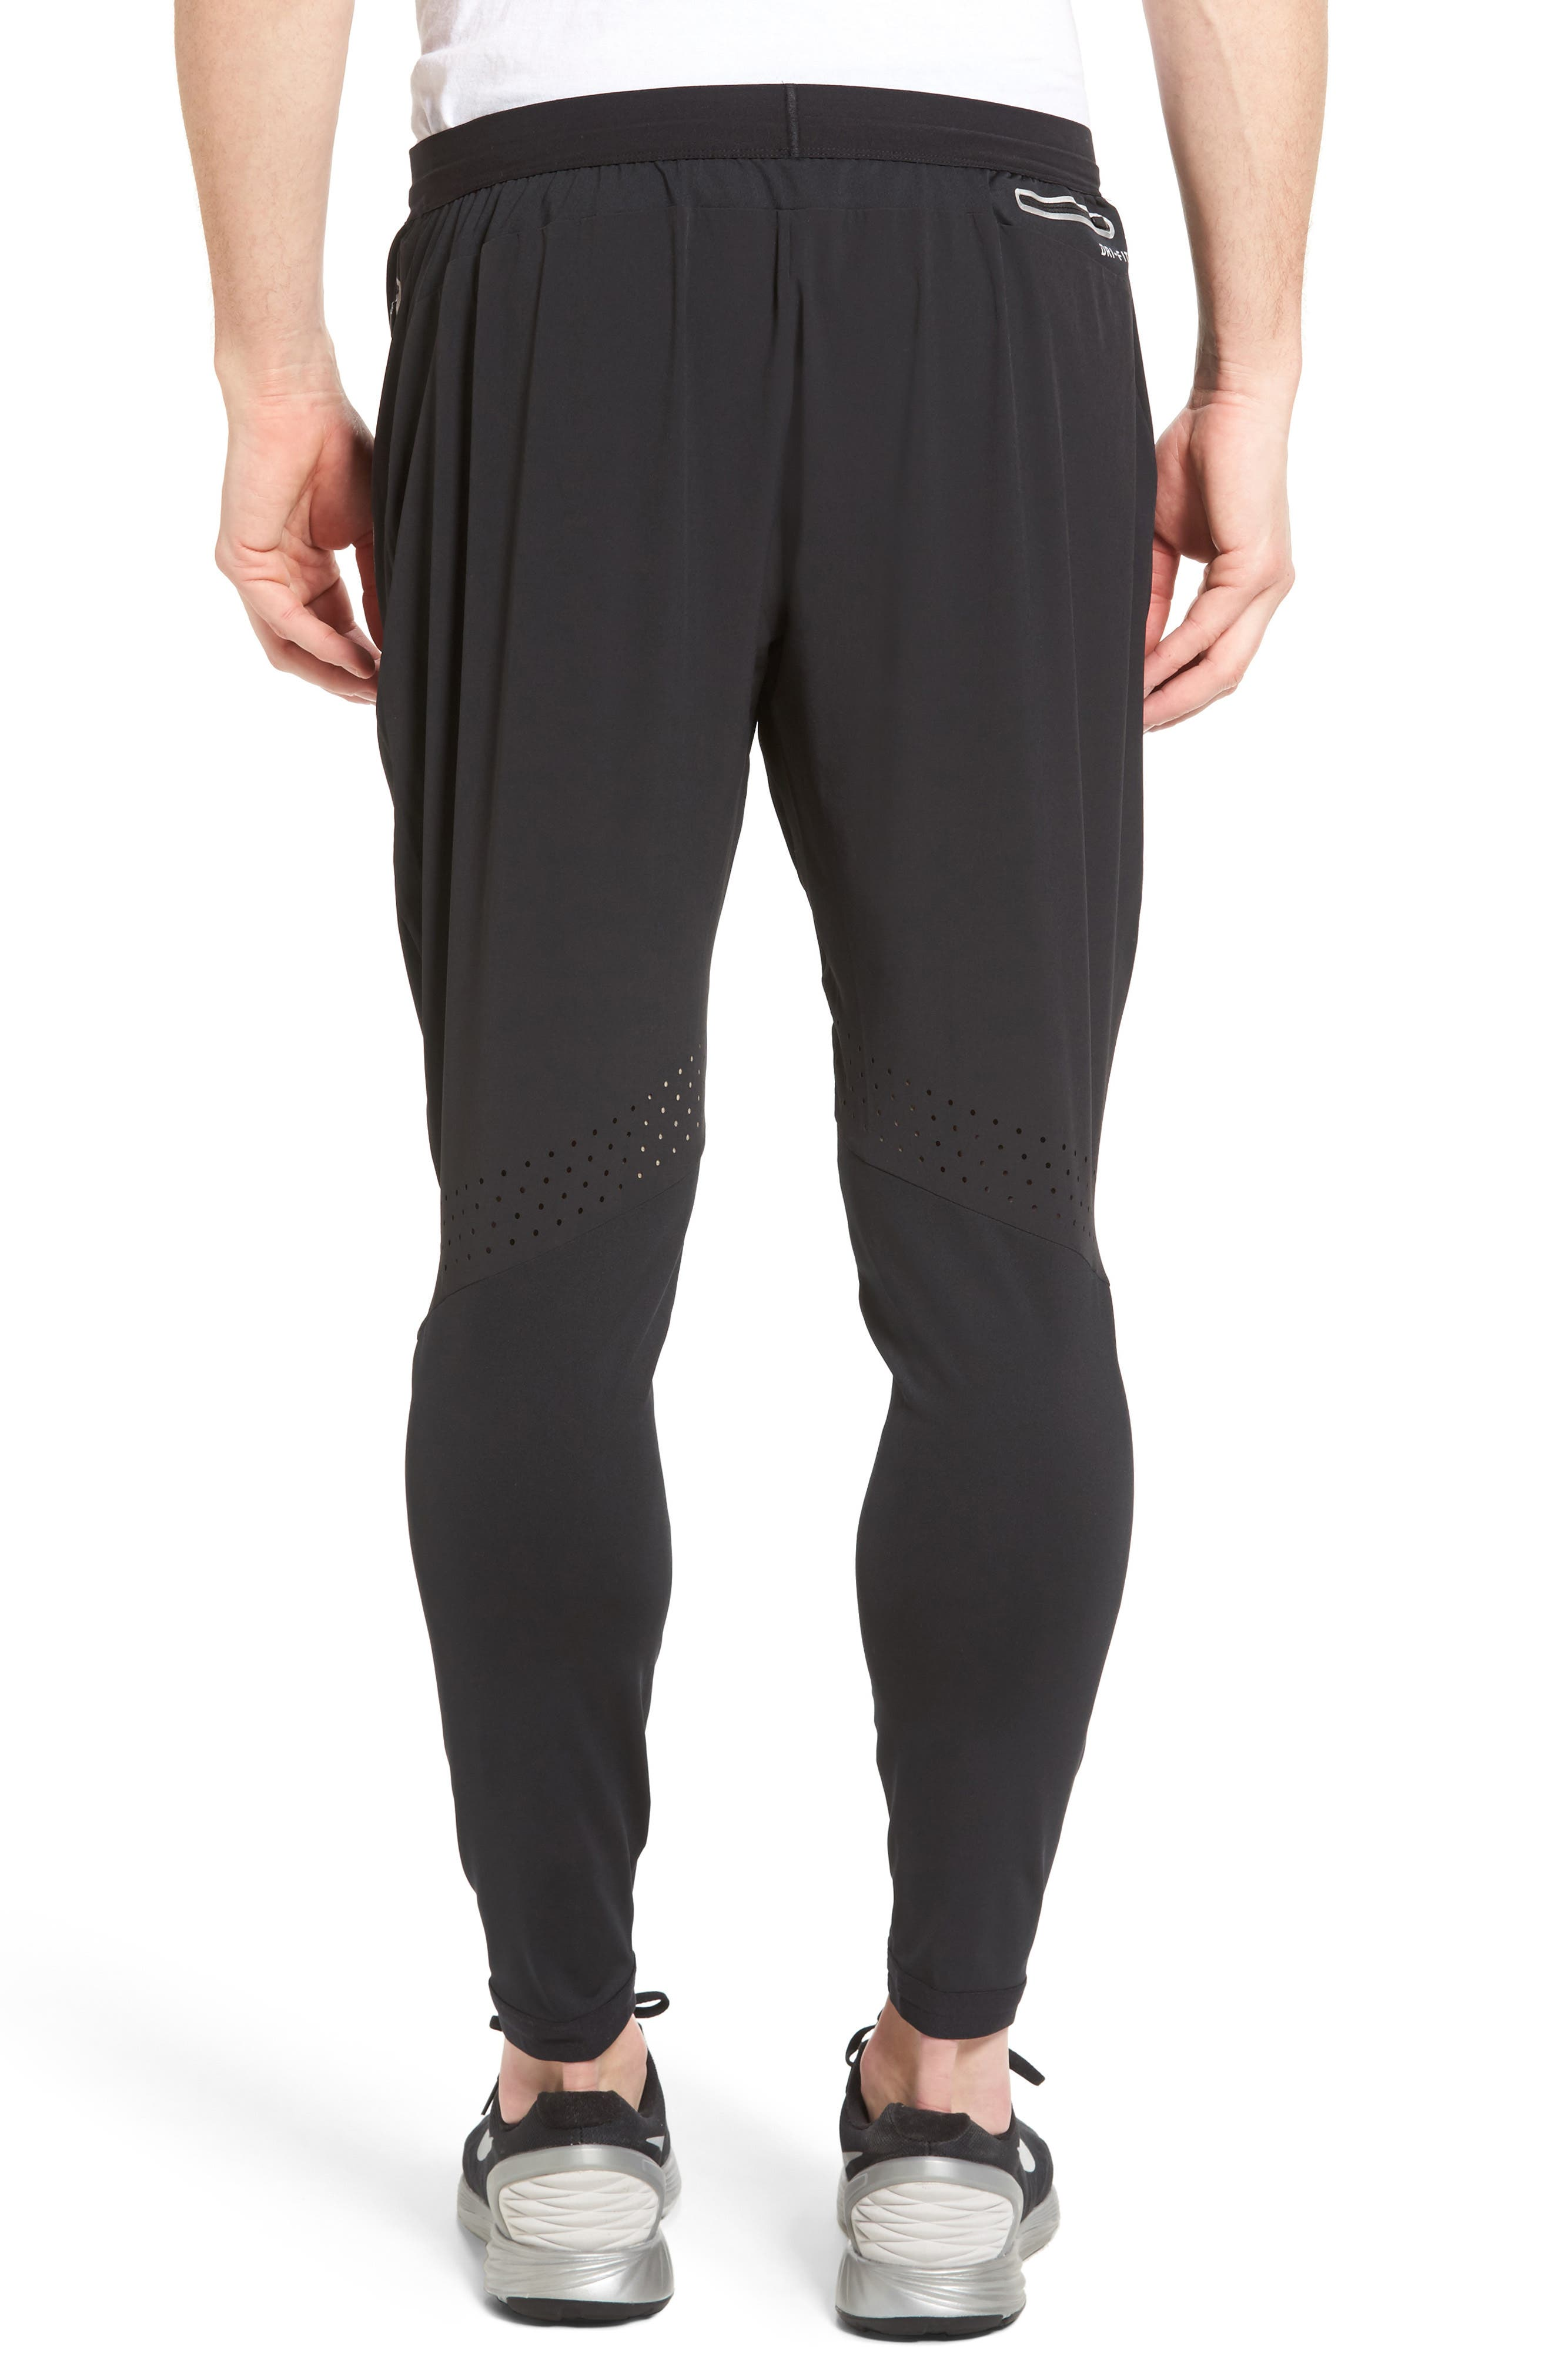 Flex Running Pants,                             Alternate thumbnail 2, color,                             BLACK/ PURE PLATINUM